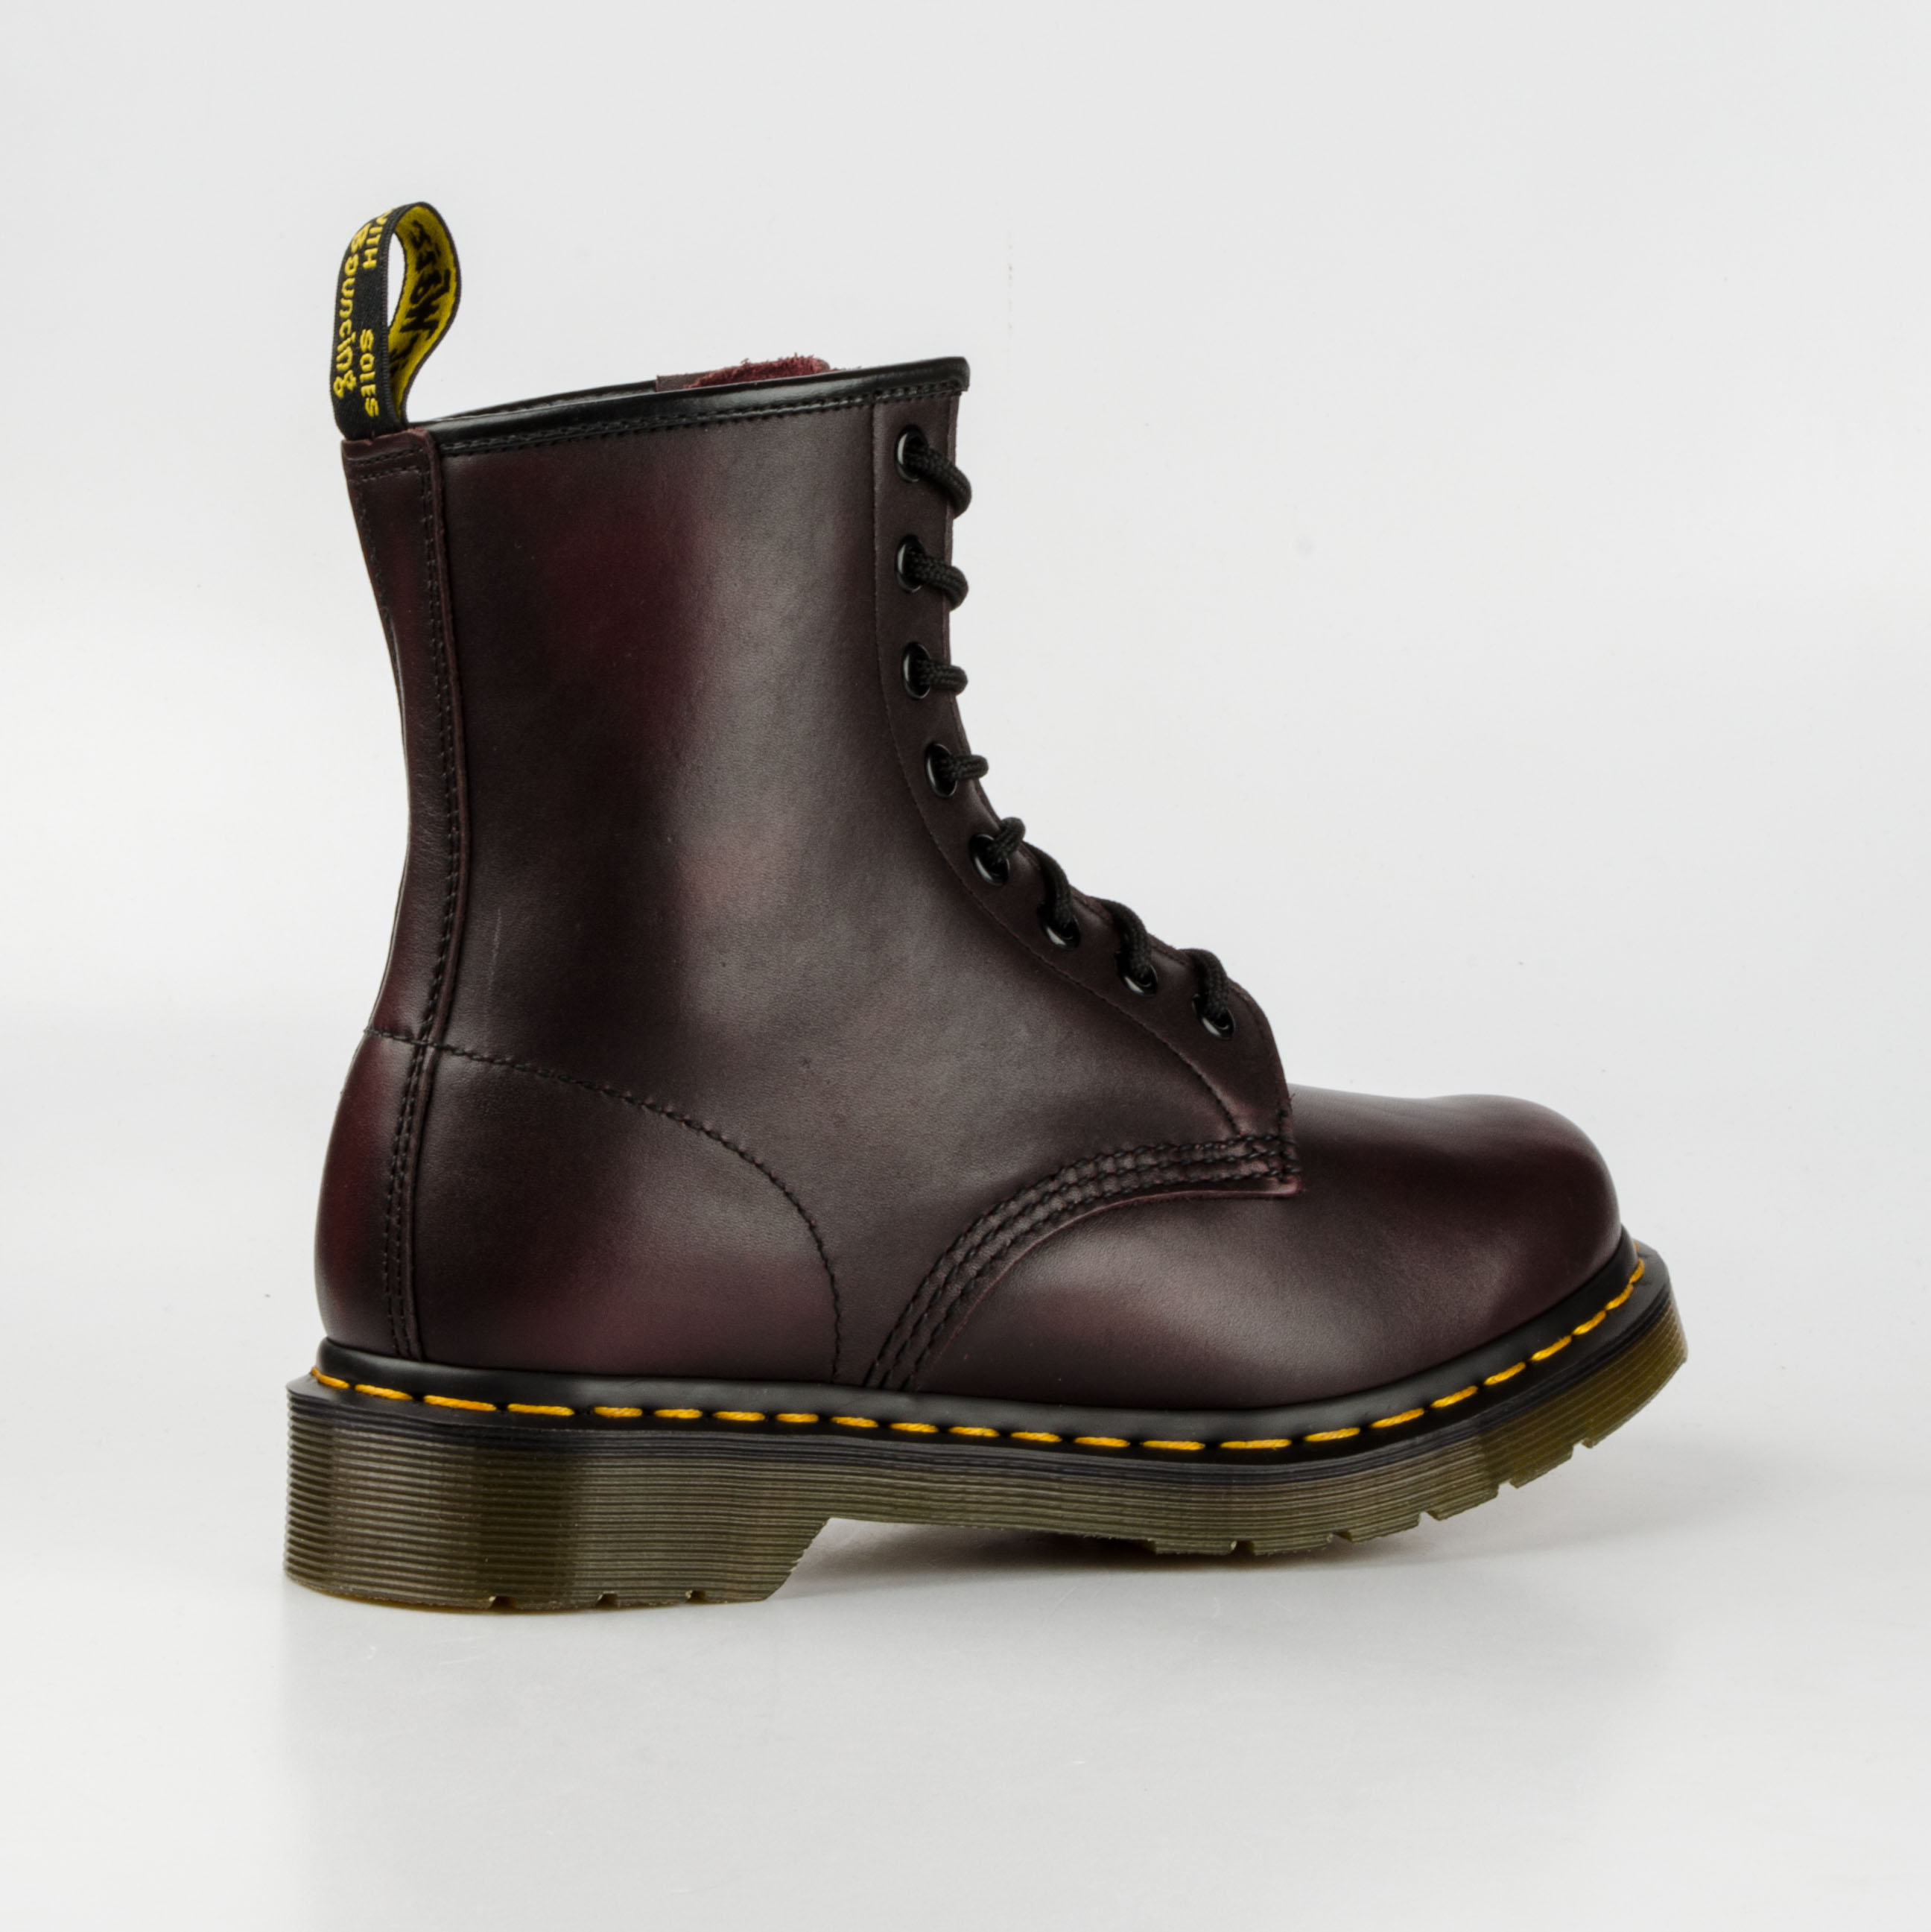 dr doc martens 1460 8 loch stiefel boots red rouge weinrot. Black Bedroom Furniture Sets. Home Design Ideas